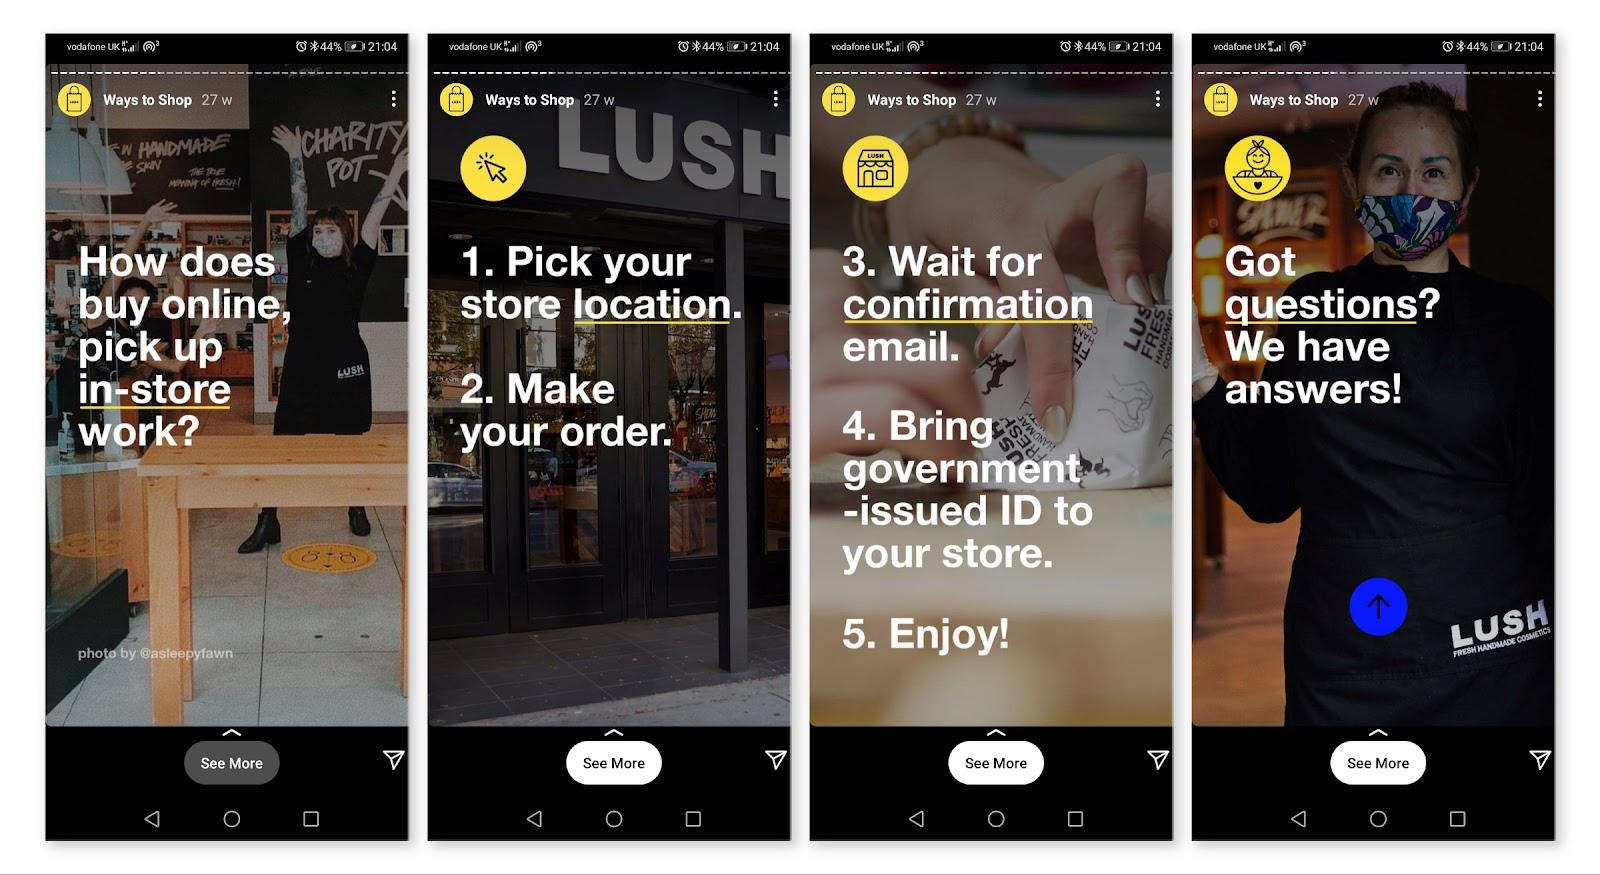 Lush Cosmetics Instagram stories to help their customers